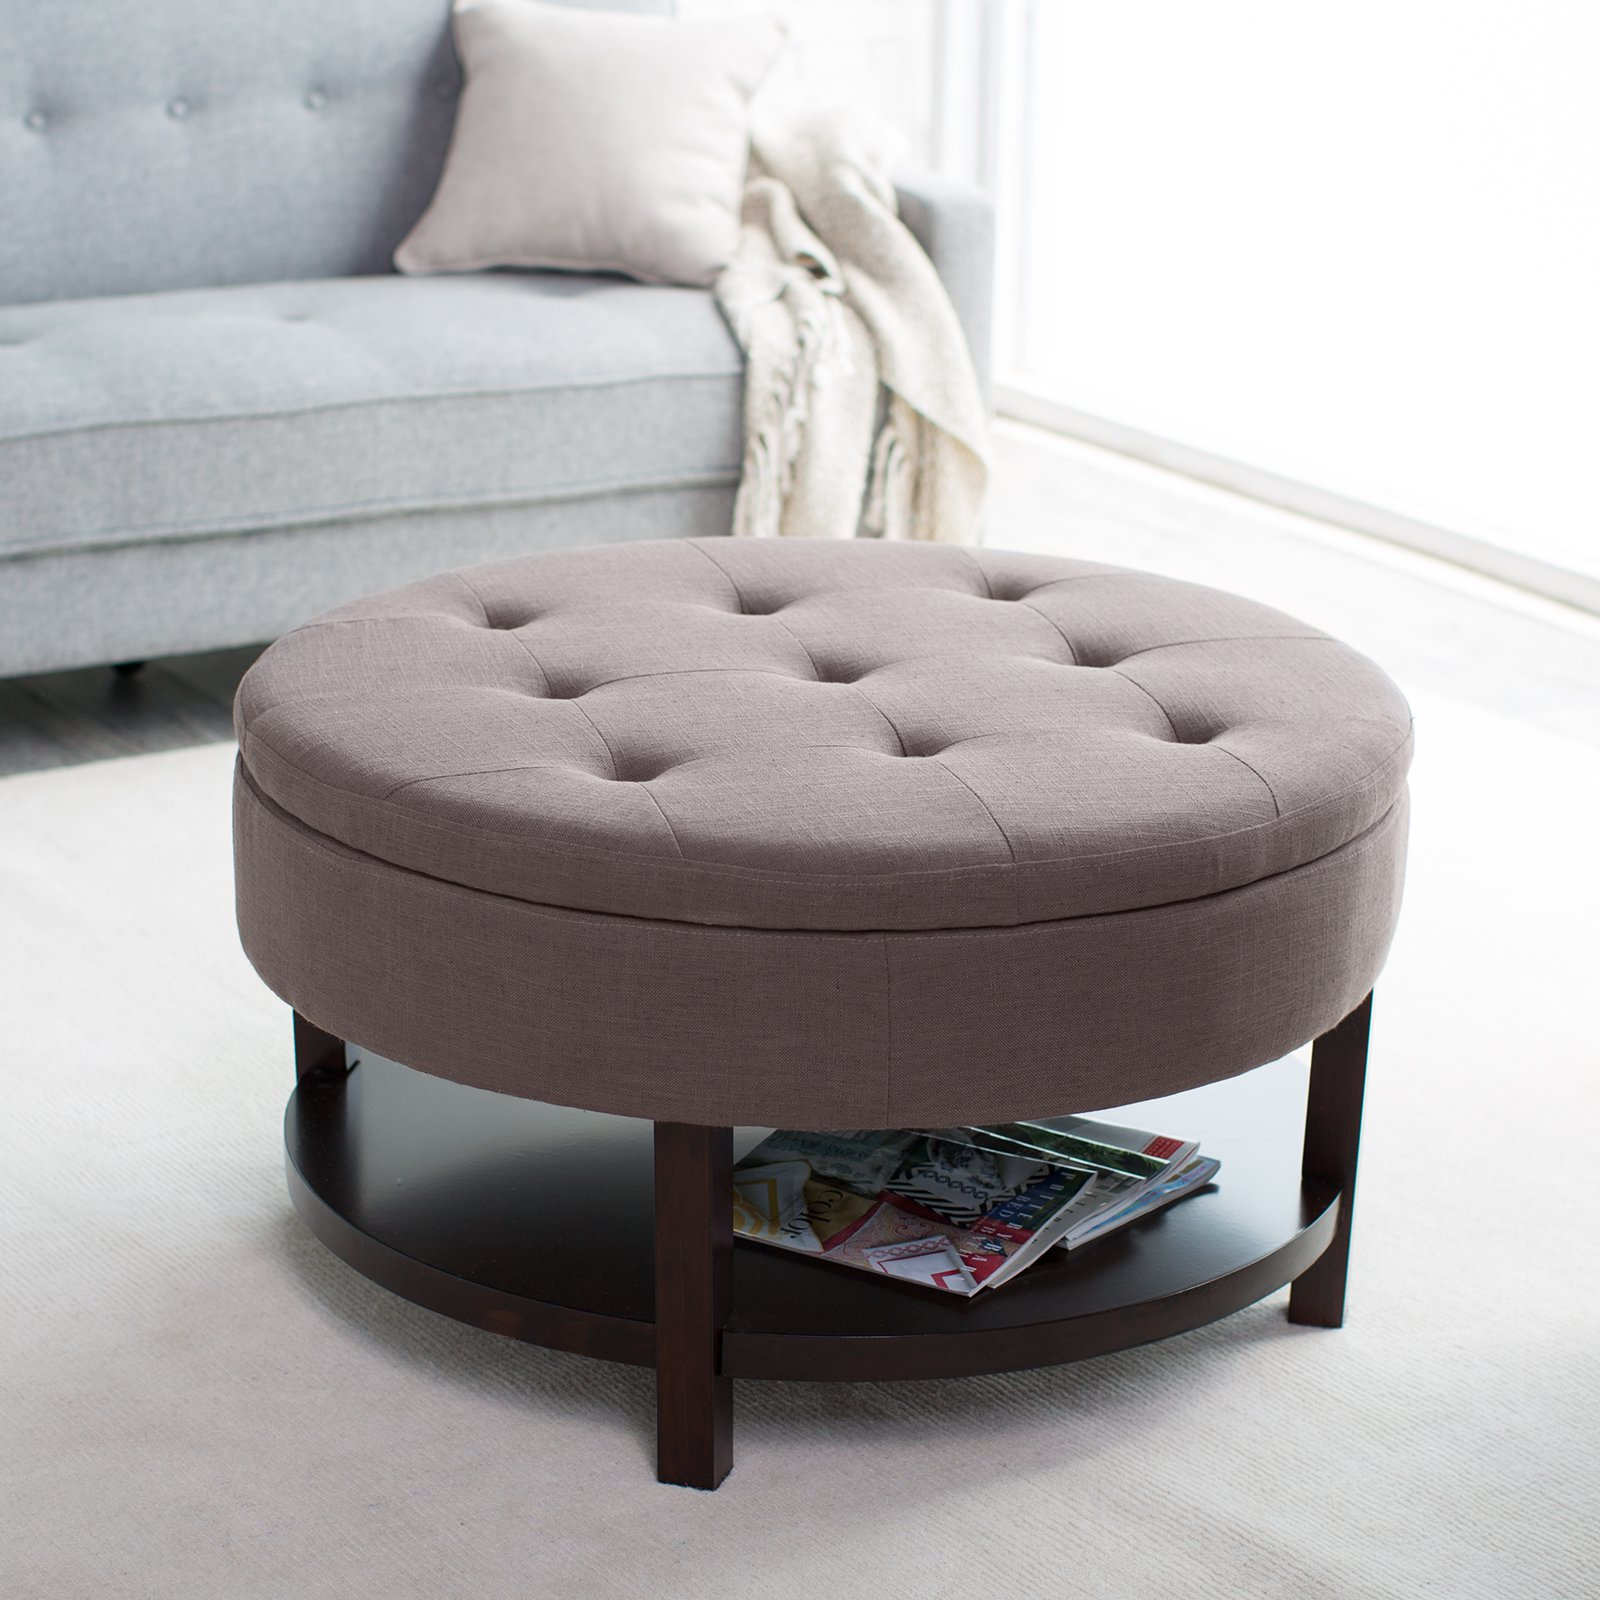 Round Padded Coffee Table Elegant Grey Round Ottoman With Upholstered Style Suitable Contemporary Living Room Design With Also Inexpensive Furniture (Image 5 of 10)